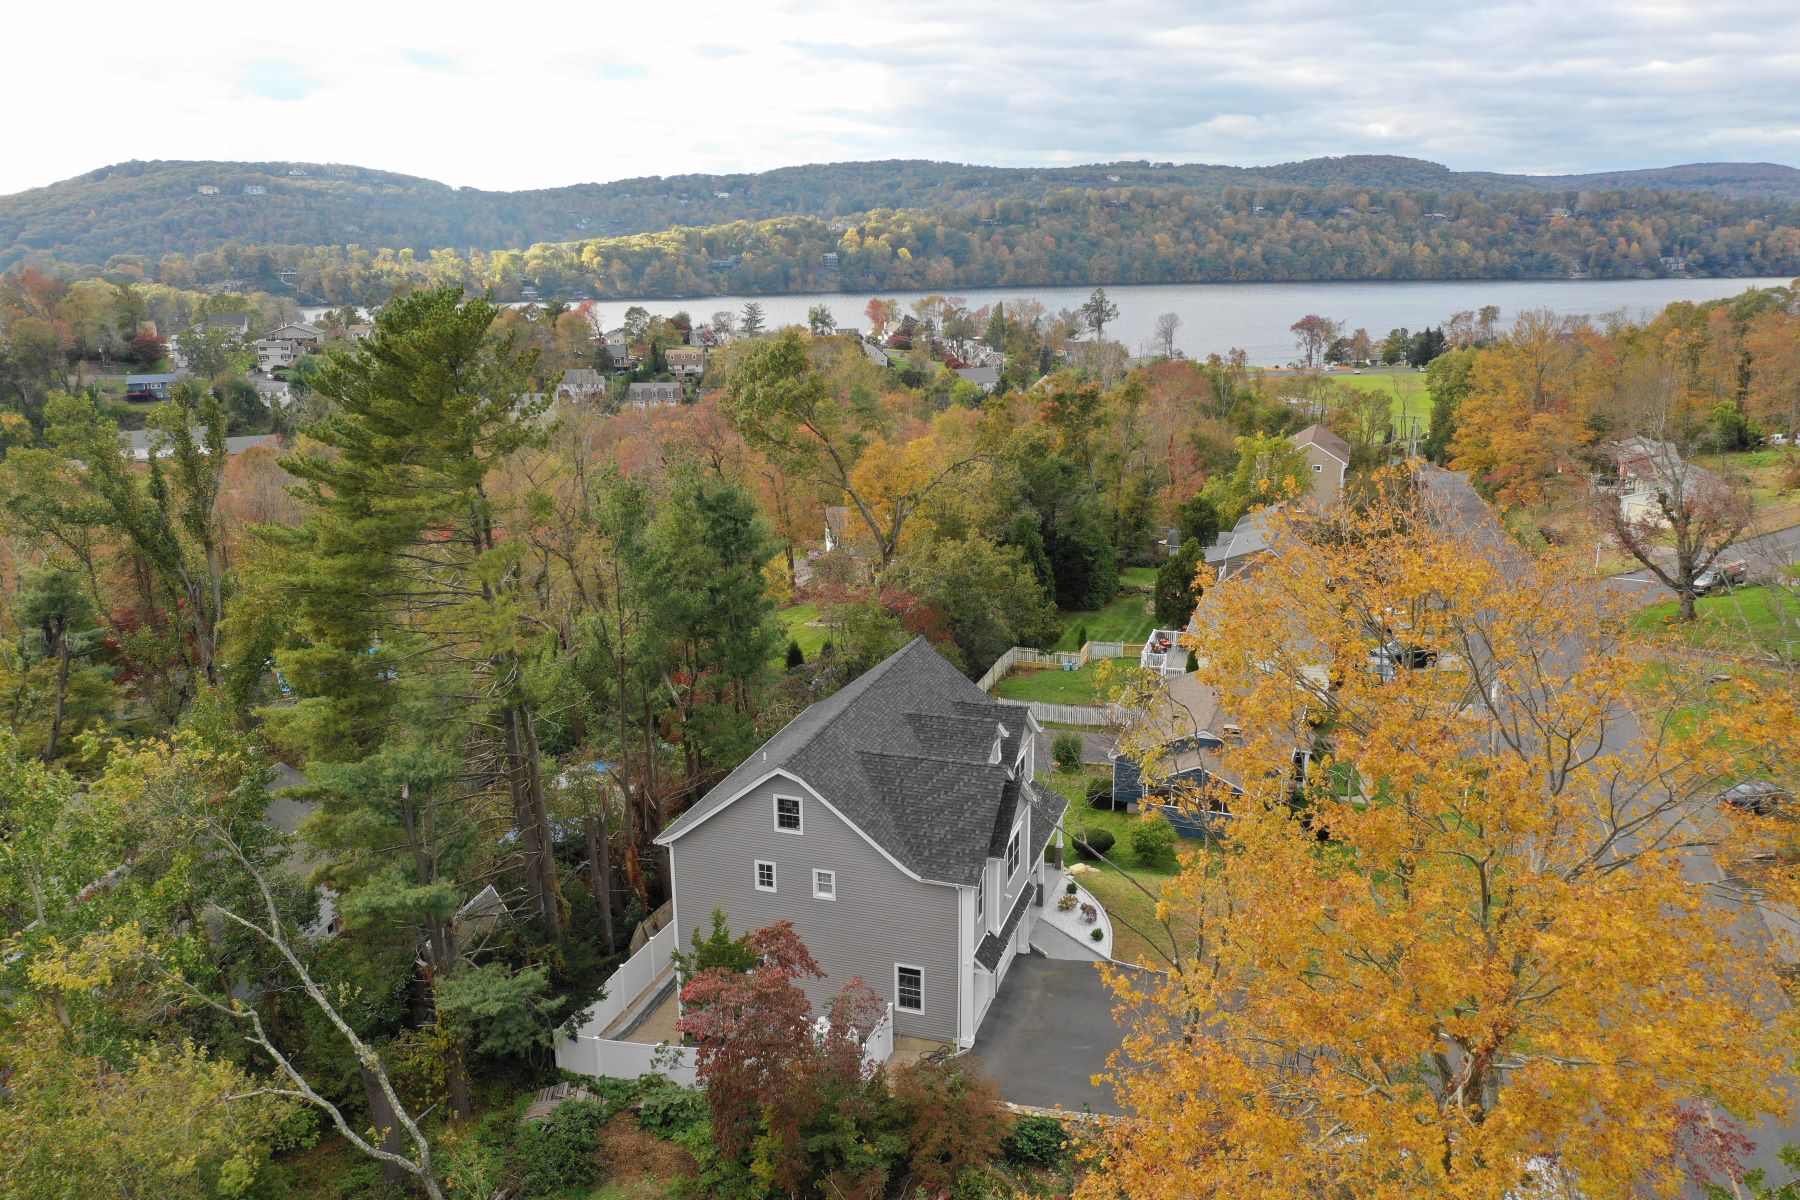 Single Family Home for Sale at Candlewood Shores Community 39 Candlewood Shores Road Brookfield, Connecticut 06804 United States